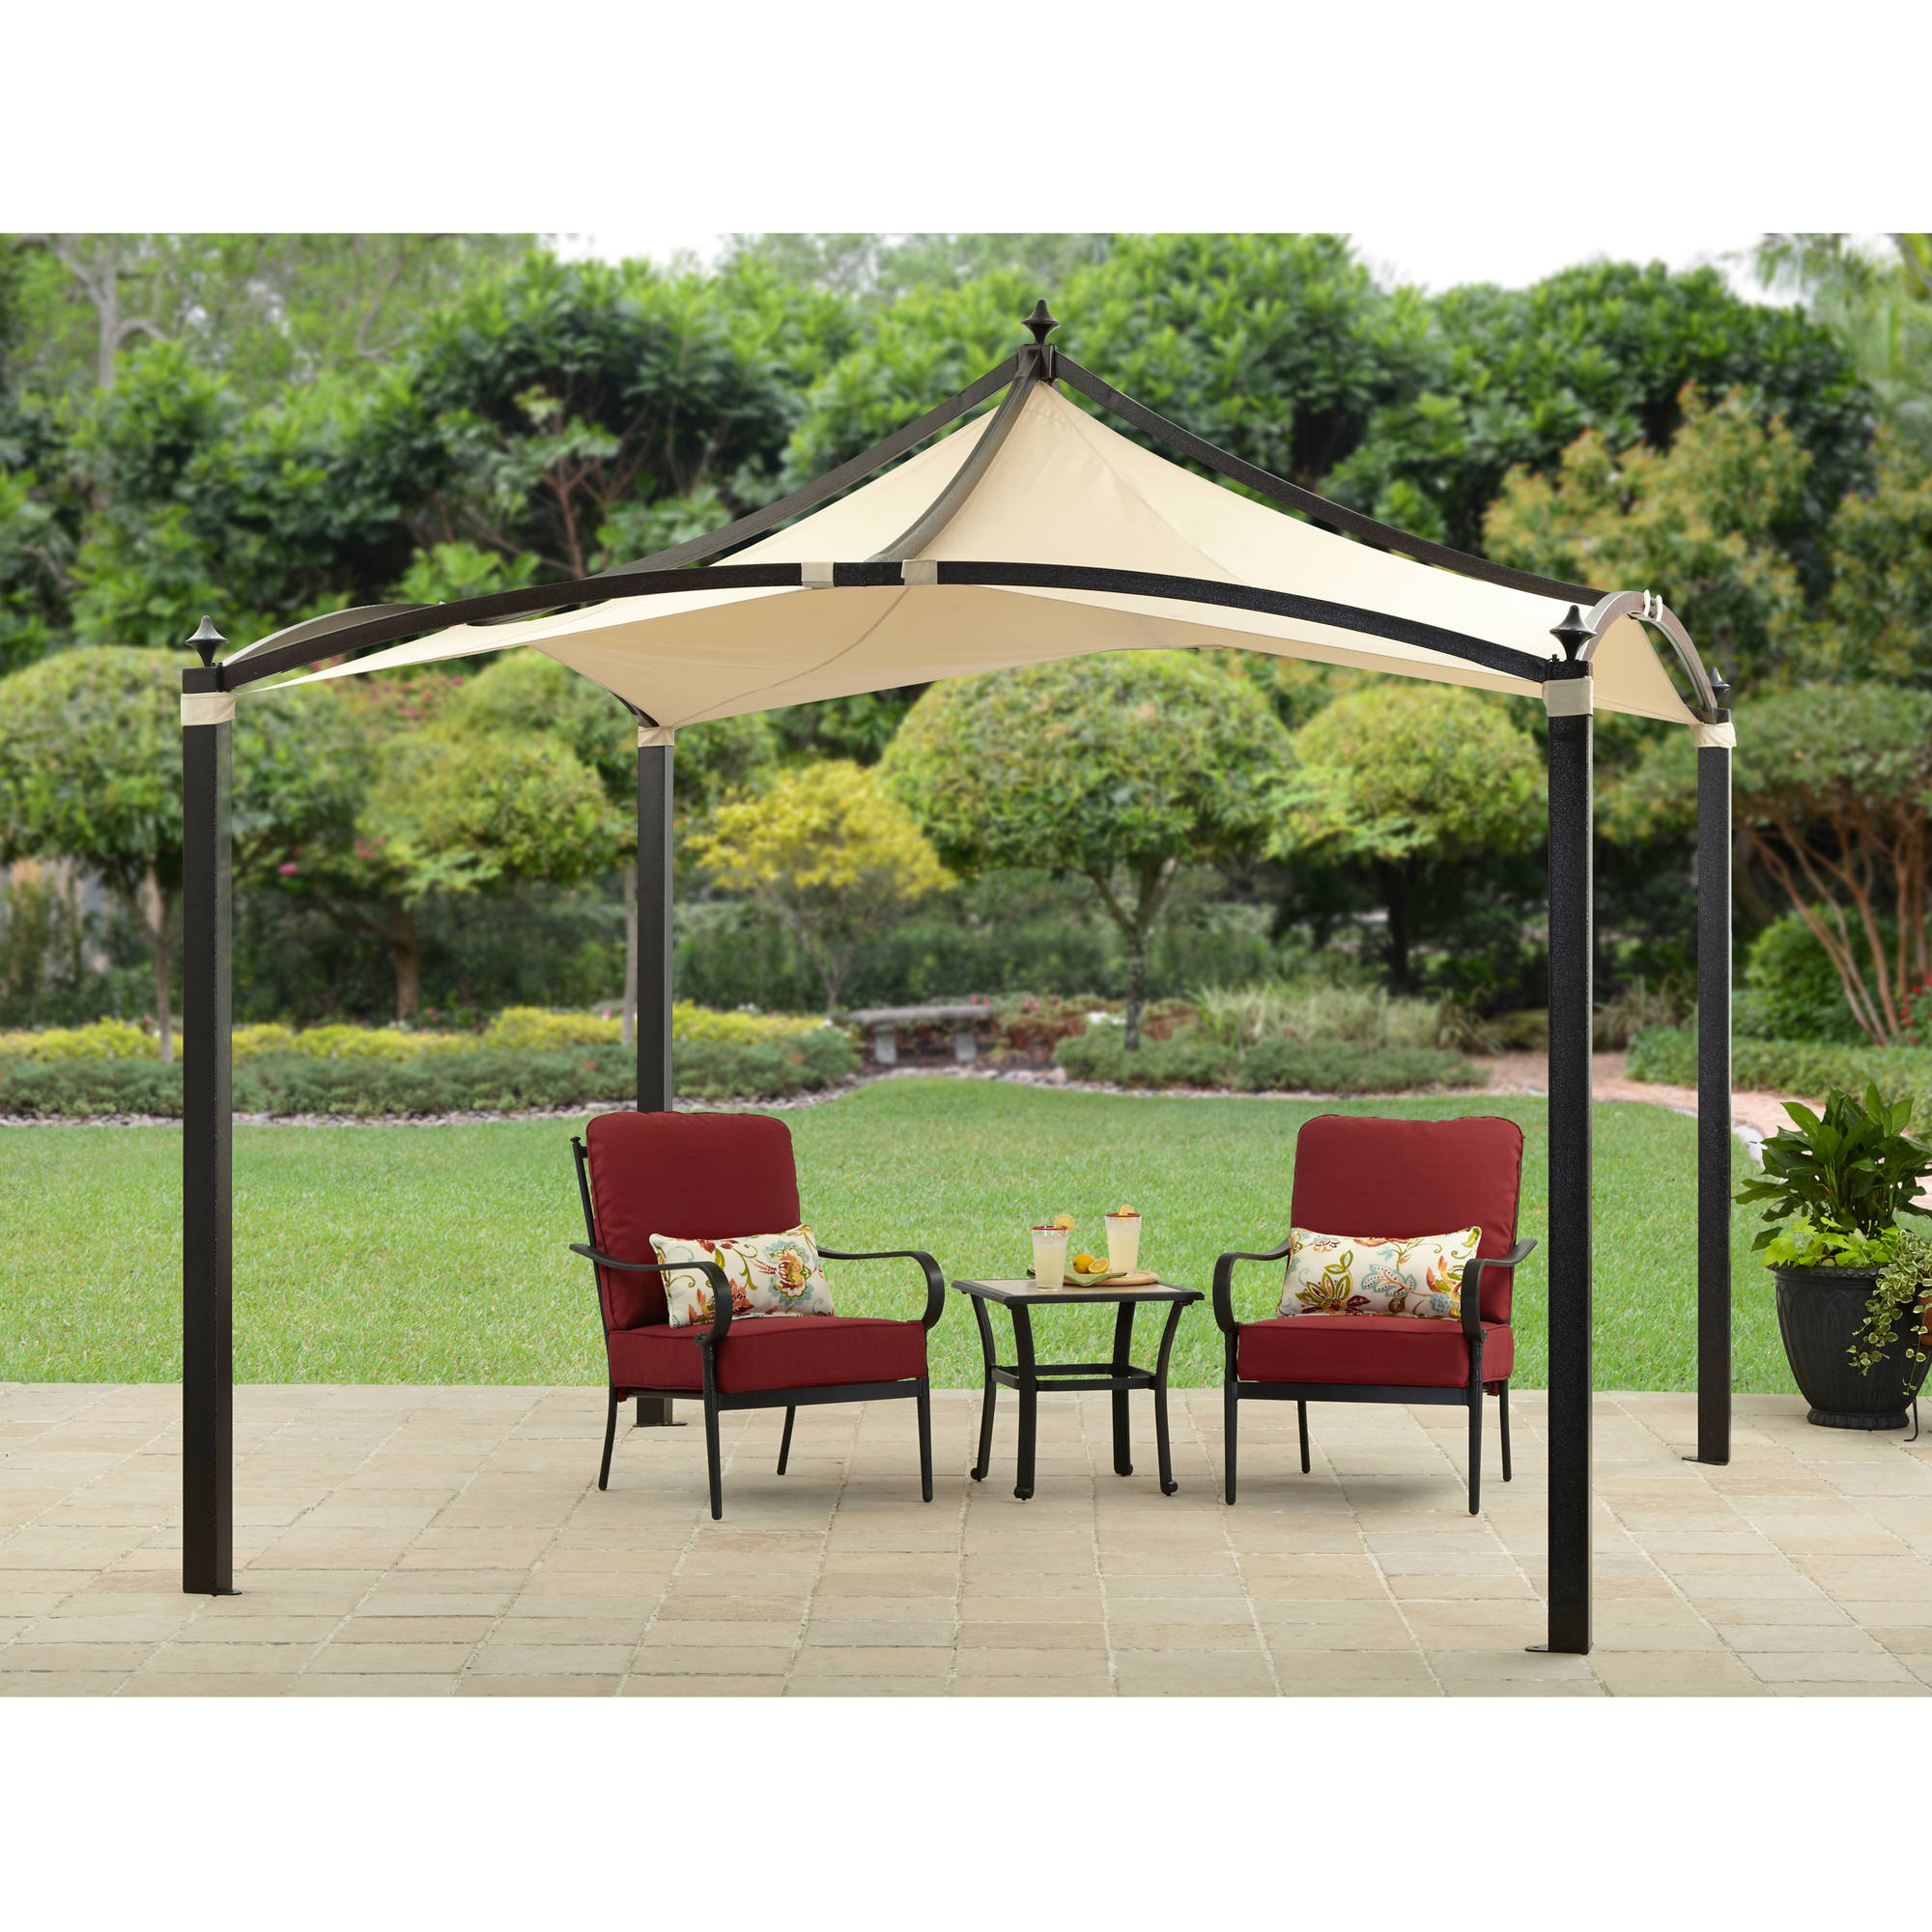 10u0027 X 12u0027 Outdoor Backyard Regency Patio Canopy Gazebo Tent, With Netting    Walmart.com